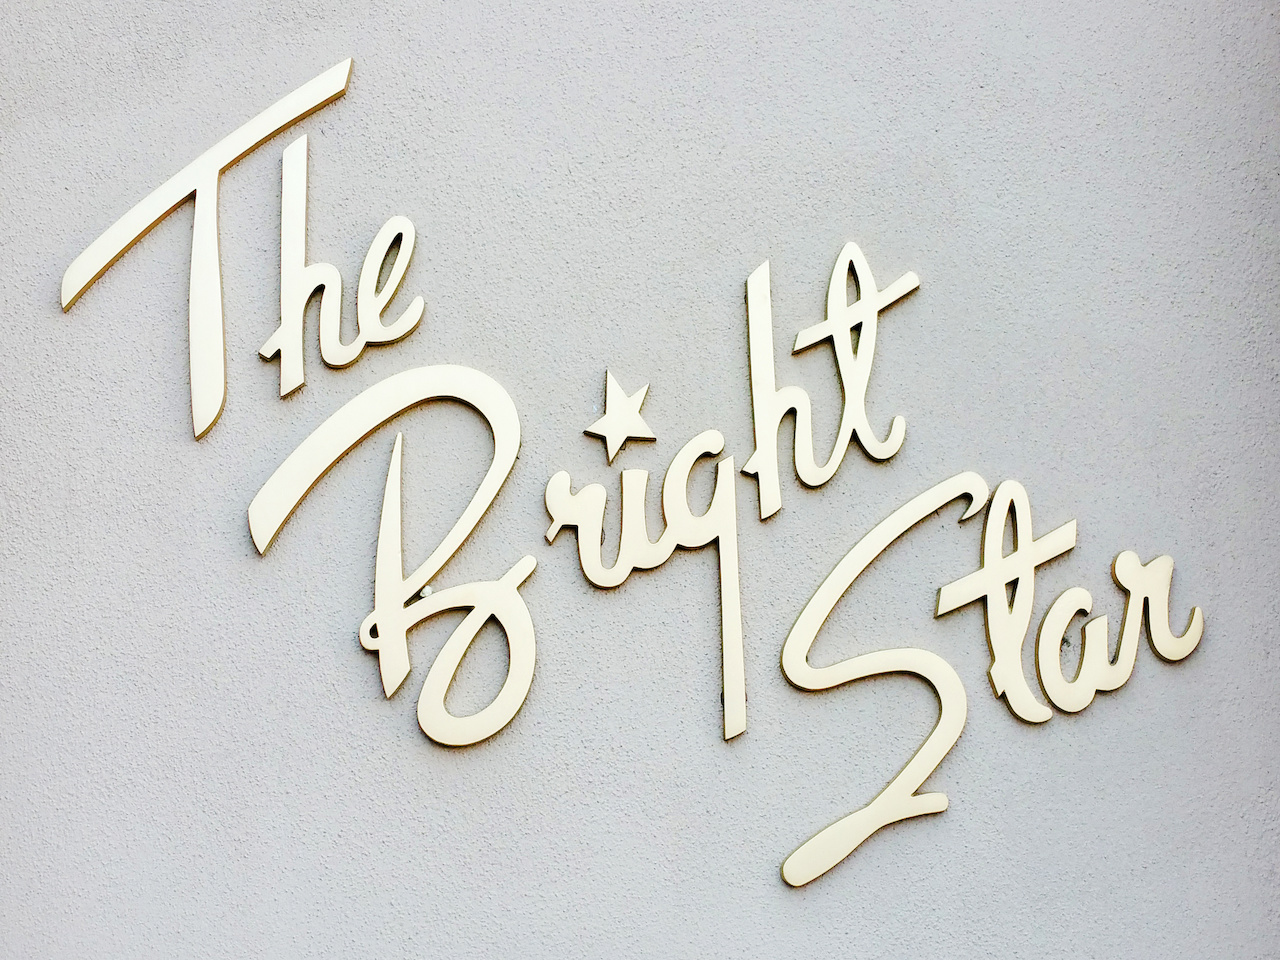 Visit The Bright Star restaurant in Bessemer for a quintessential classic American dining experience!